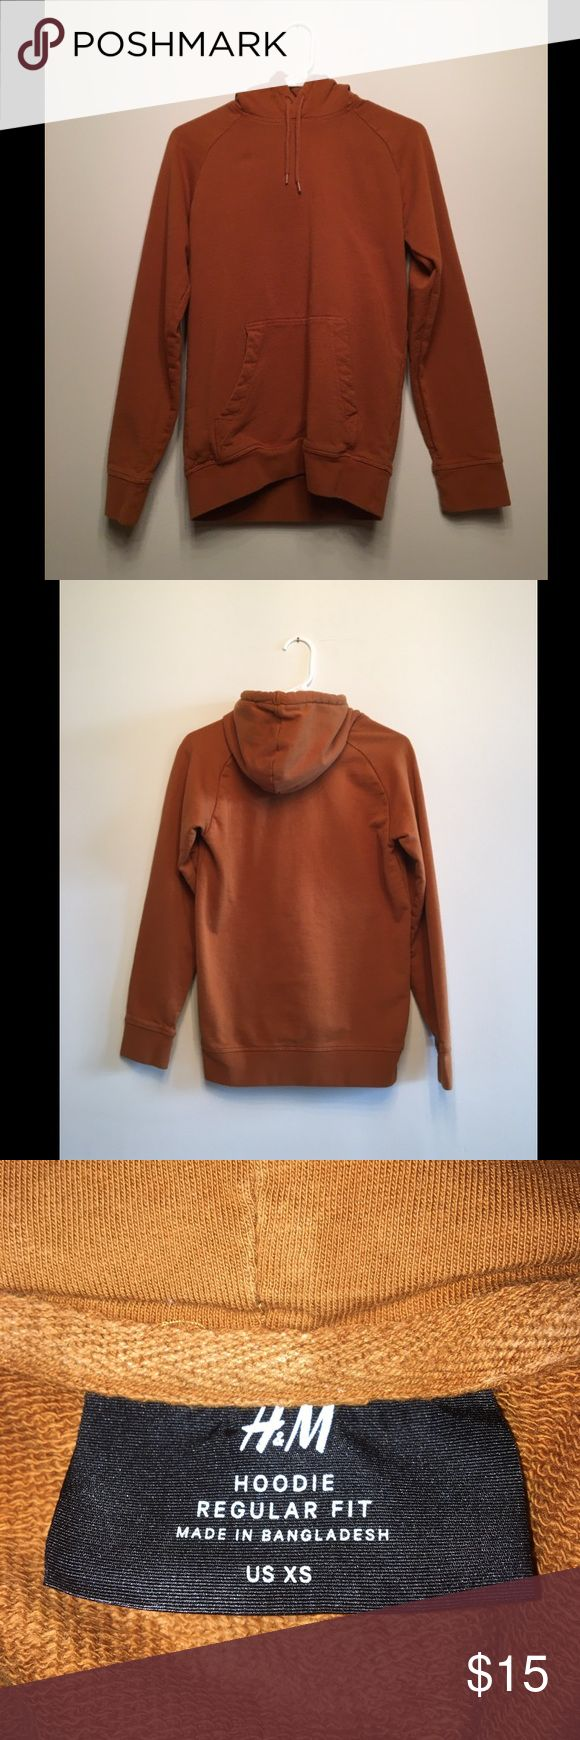 H&M Sweatshirt with Raglan Sleeves Ocher H&M Sweatshirt with Raglan Sleeves Ocher  - Men's XS - In great condition - Has been washed and worn  ALL SALES ARE FINAL NO TRADES H&M Shirts Sweatshirts & Hoodies